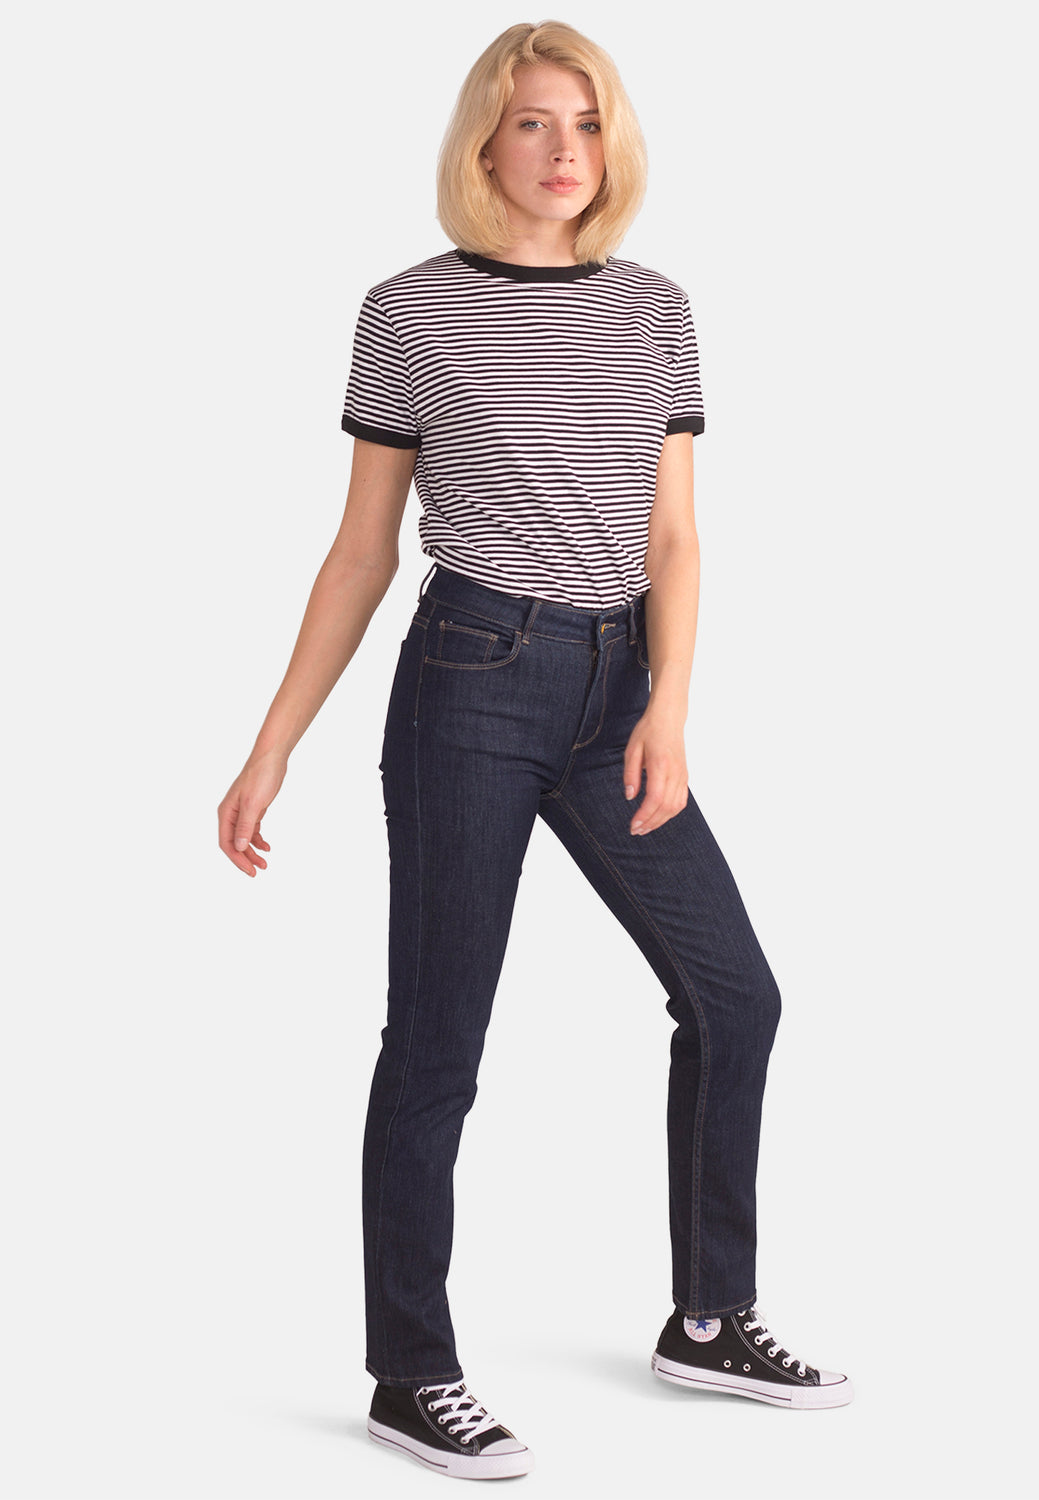 EMILY // Organic Slim Fit Jeans in Rinse Wash - Monkee Genes Organic Jeans Denim - Women's Slim Fit Monkee Genes Official  Monkee Genes Official